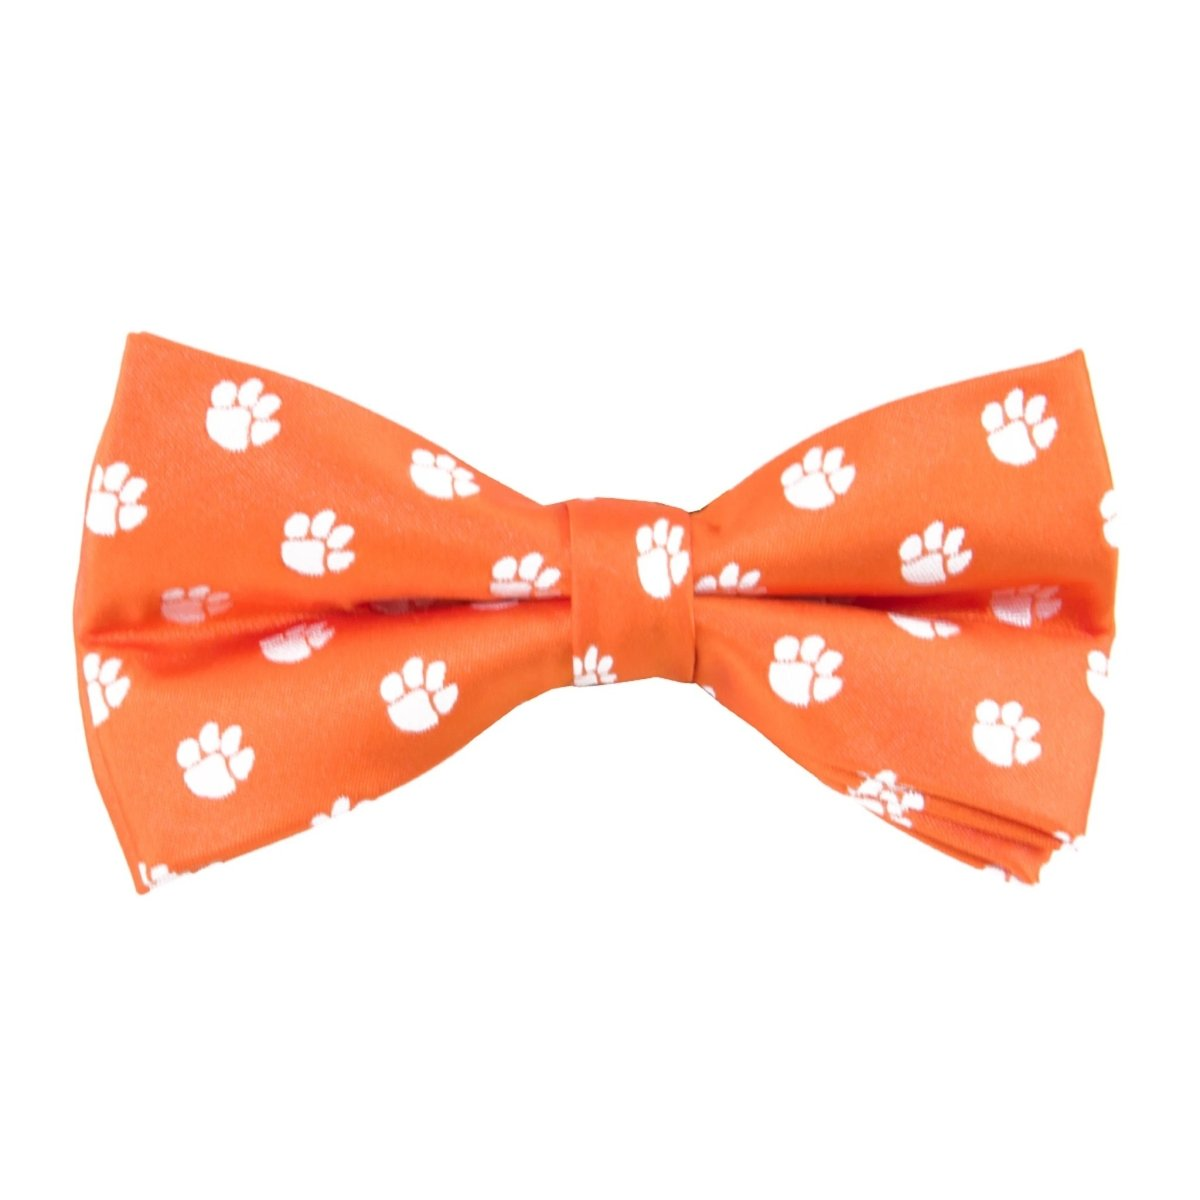 Woven Pre Tied Bow Tie - Orange With White Paws Adjustable 11 - 19'' - Mr. Knickerbocker